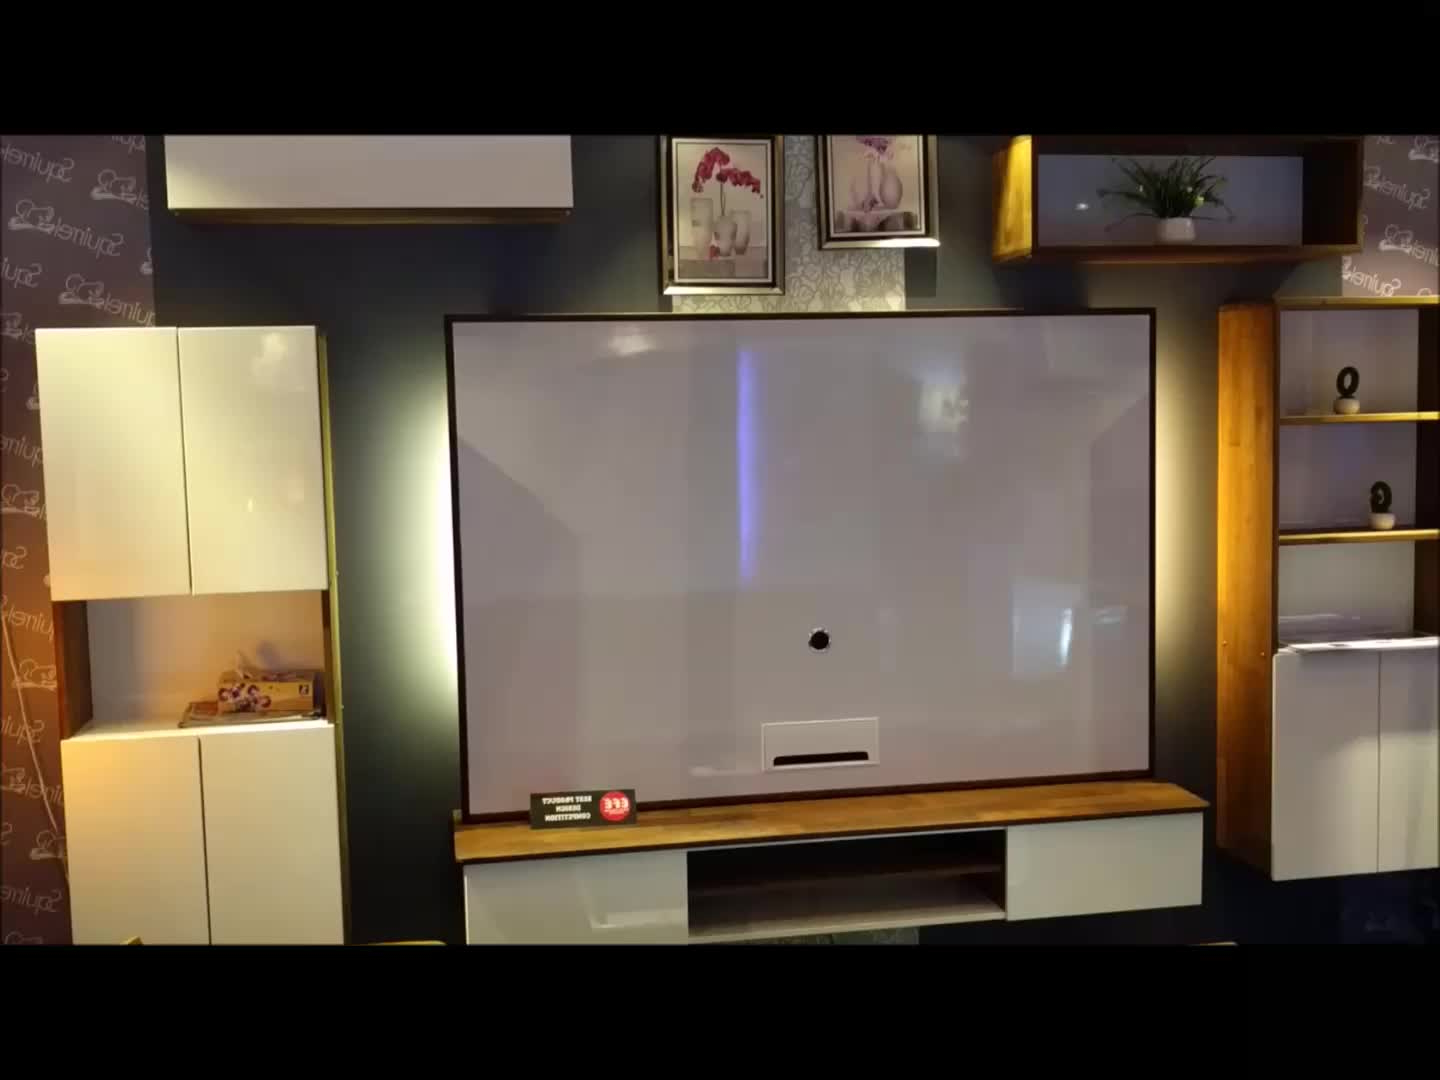 Wall Mounted Modular Living Room Modern Design Tv Cabinet – Buy Lcd Within Most Current Modern Design Tv Cabinets (View 17 of 20)